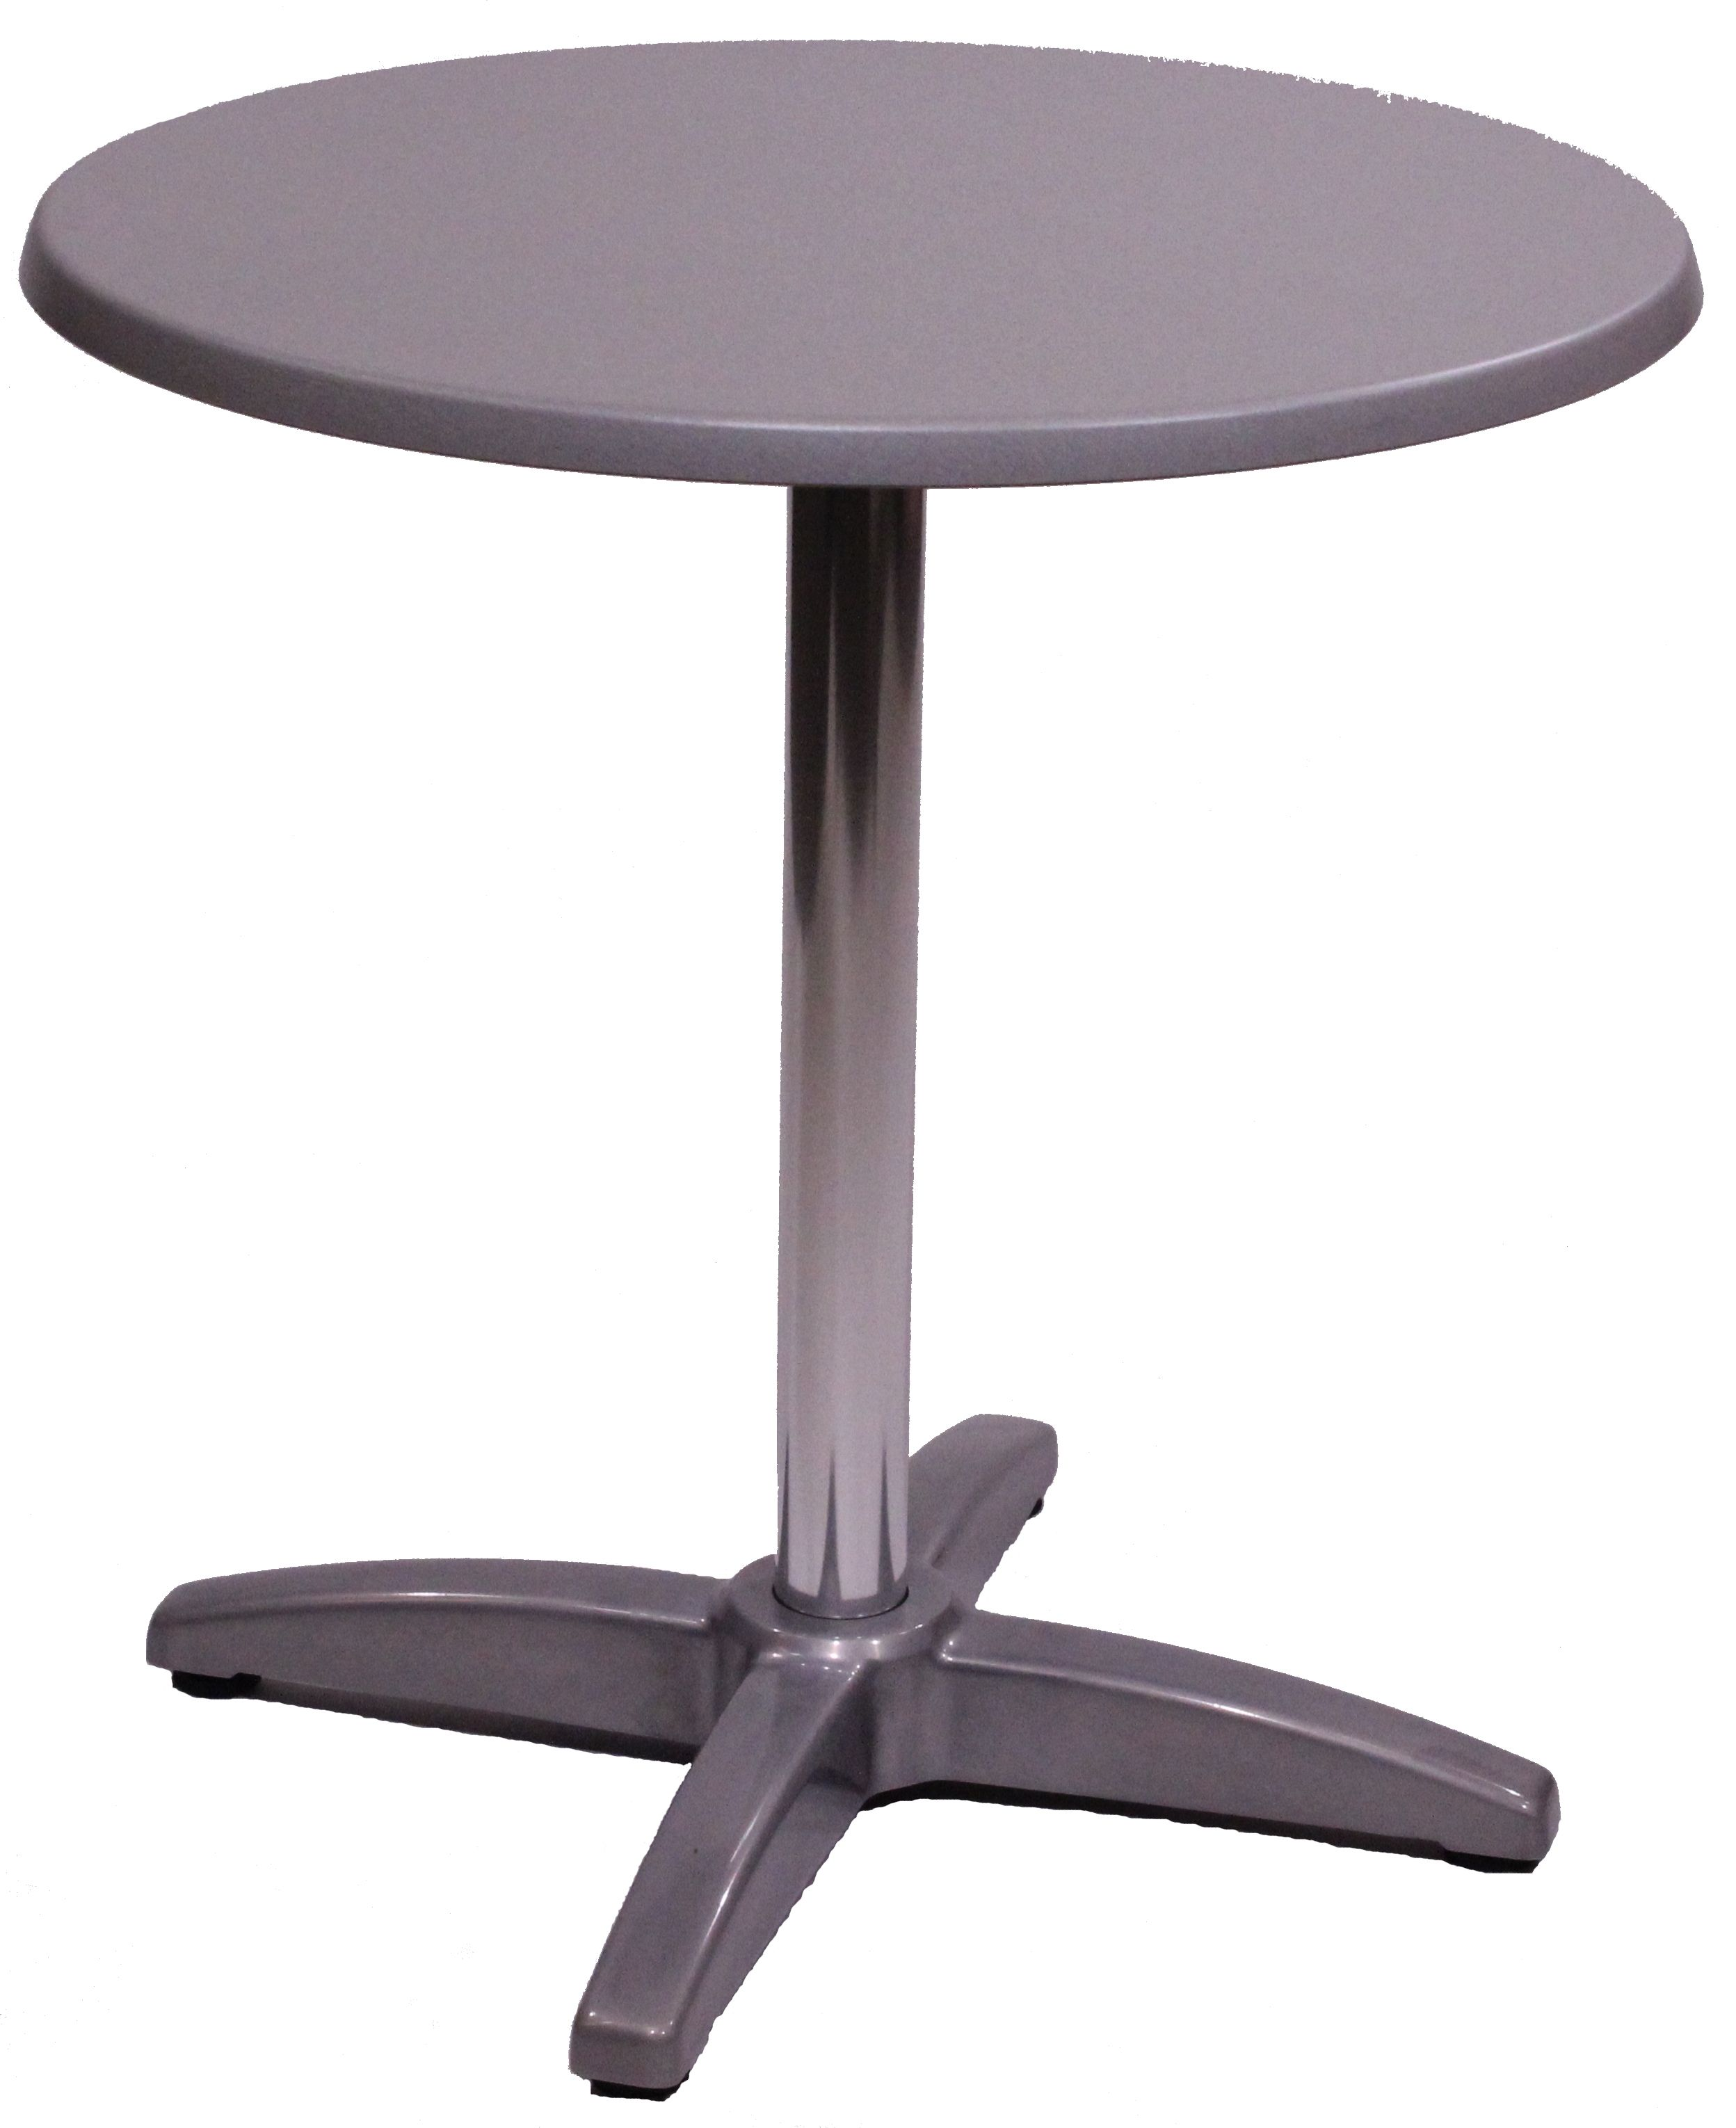 Table Exterieur De Restaurant Gueridon Solea D70 Plateau Stratifie Moule Usage Interieur Exterieur